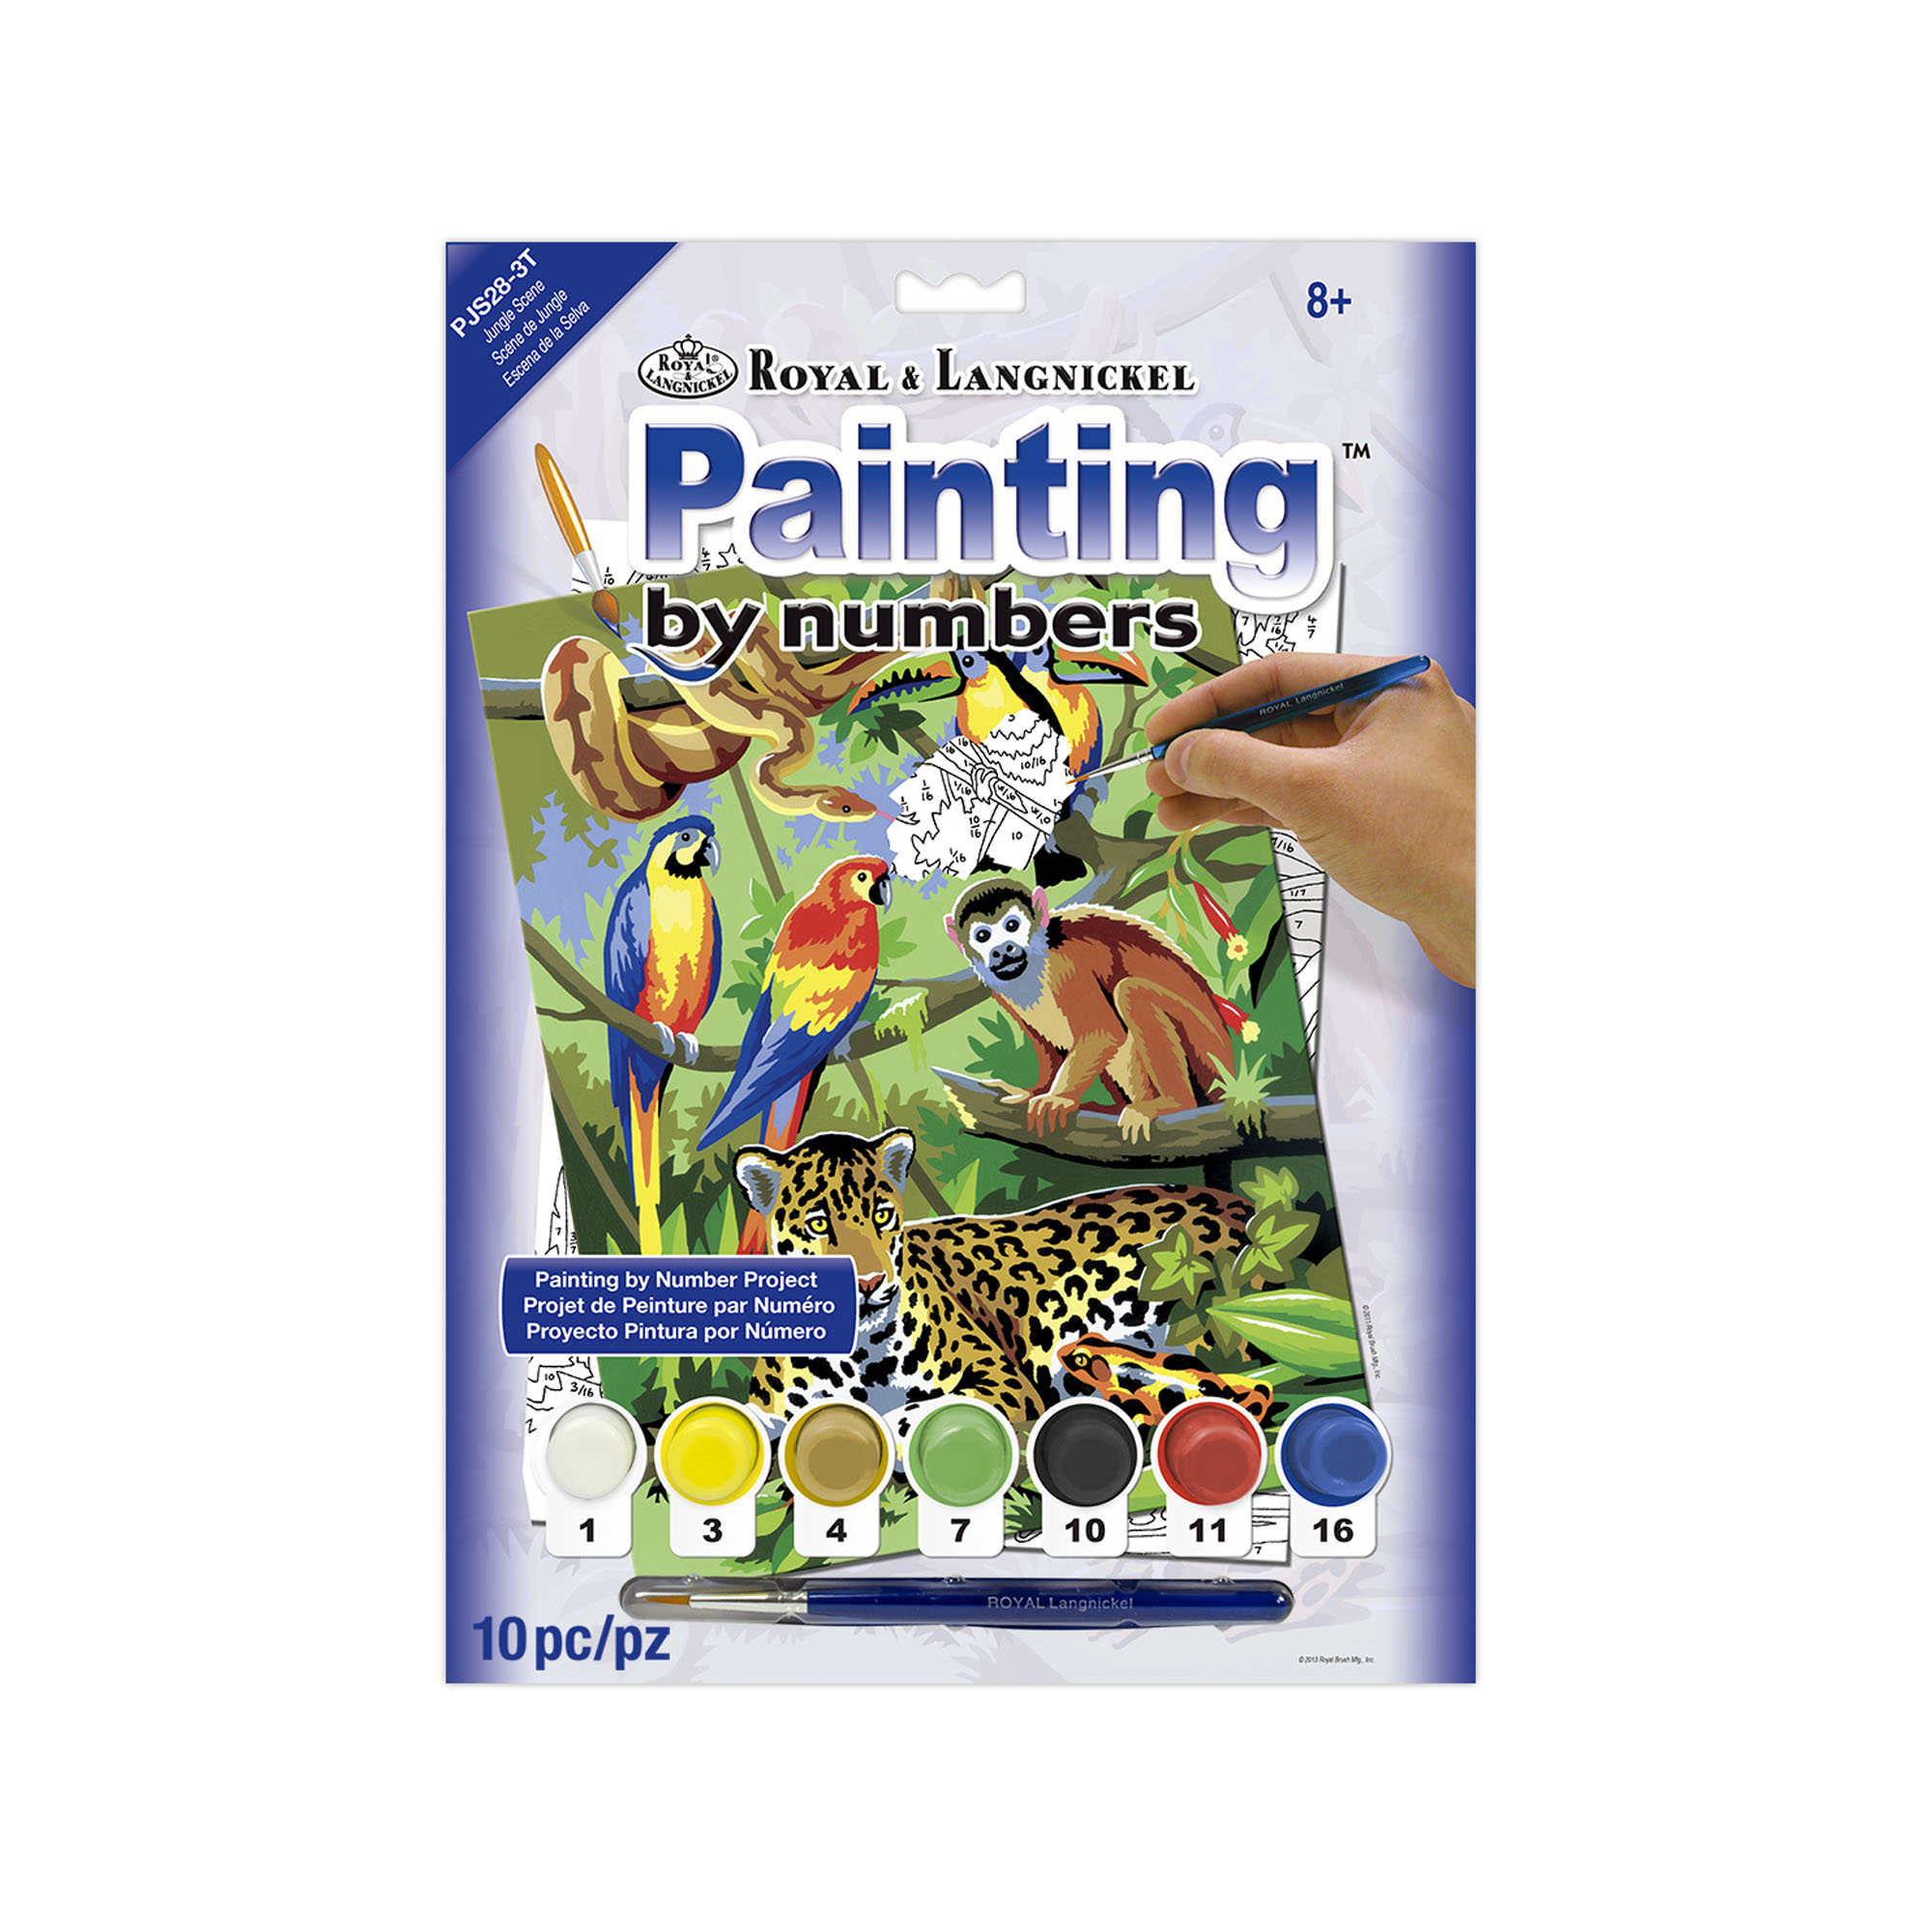 Jungle paint by numbers kit